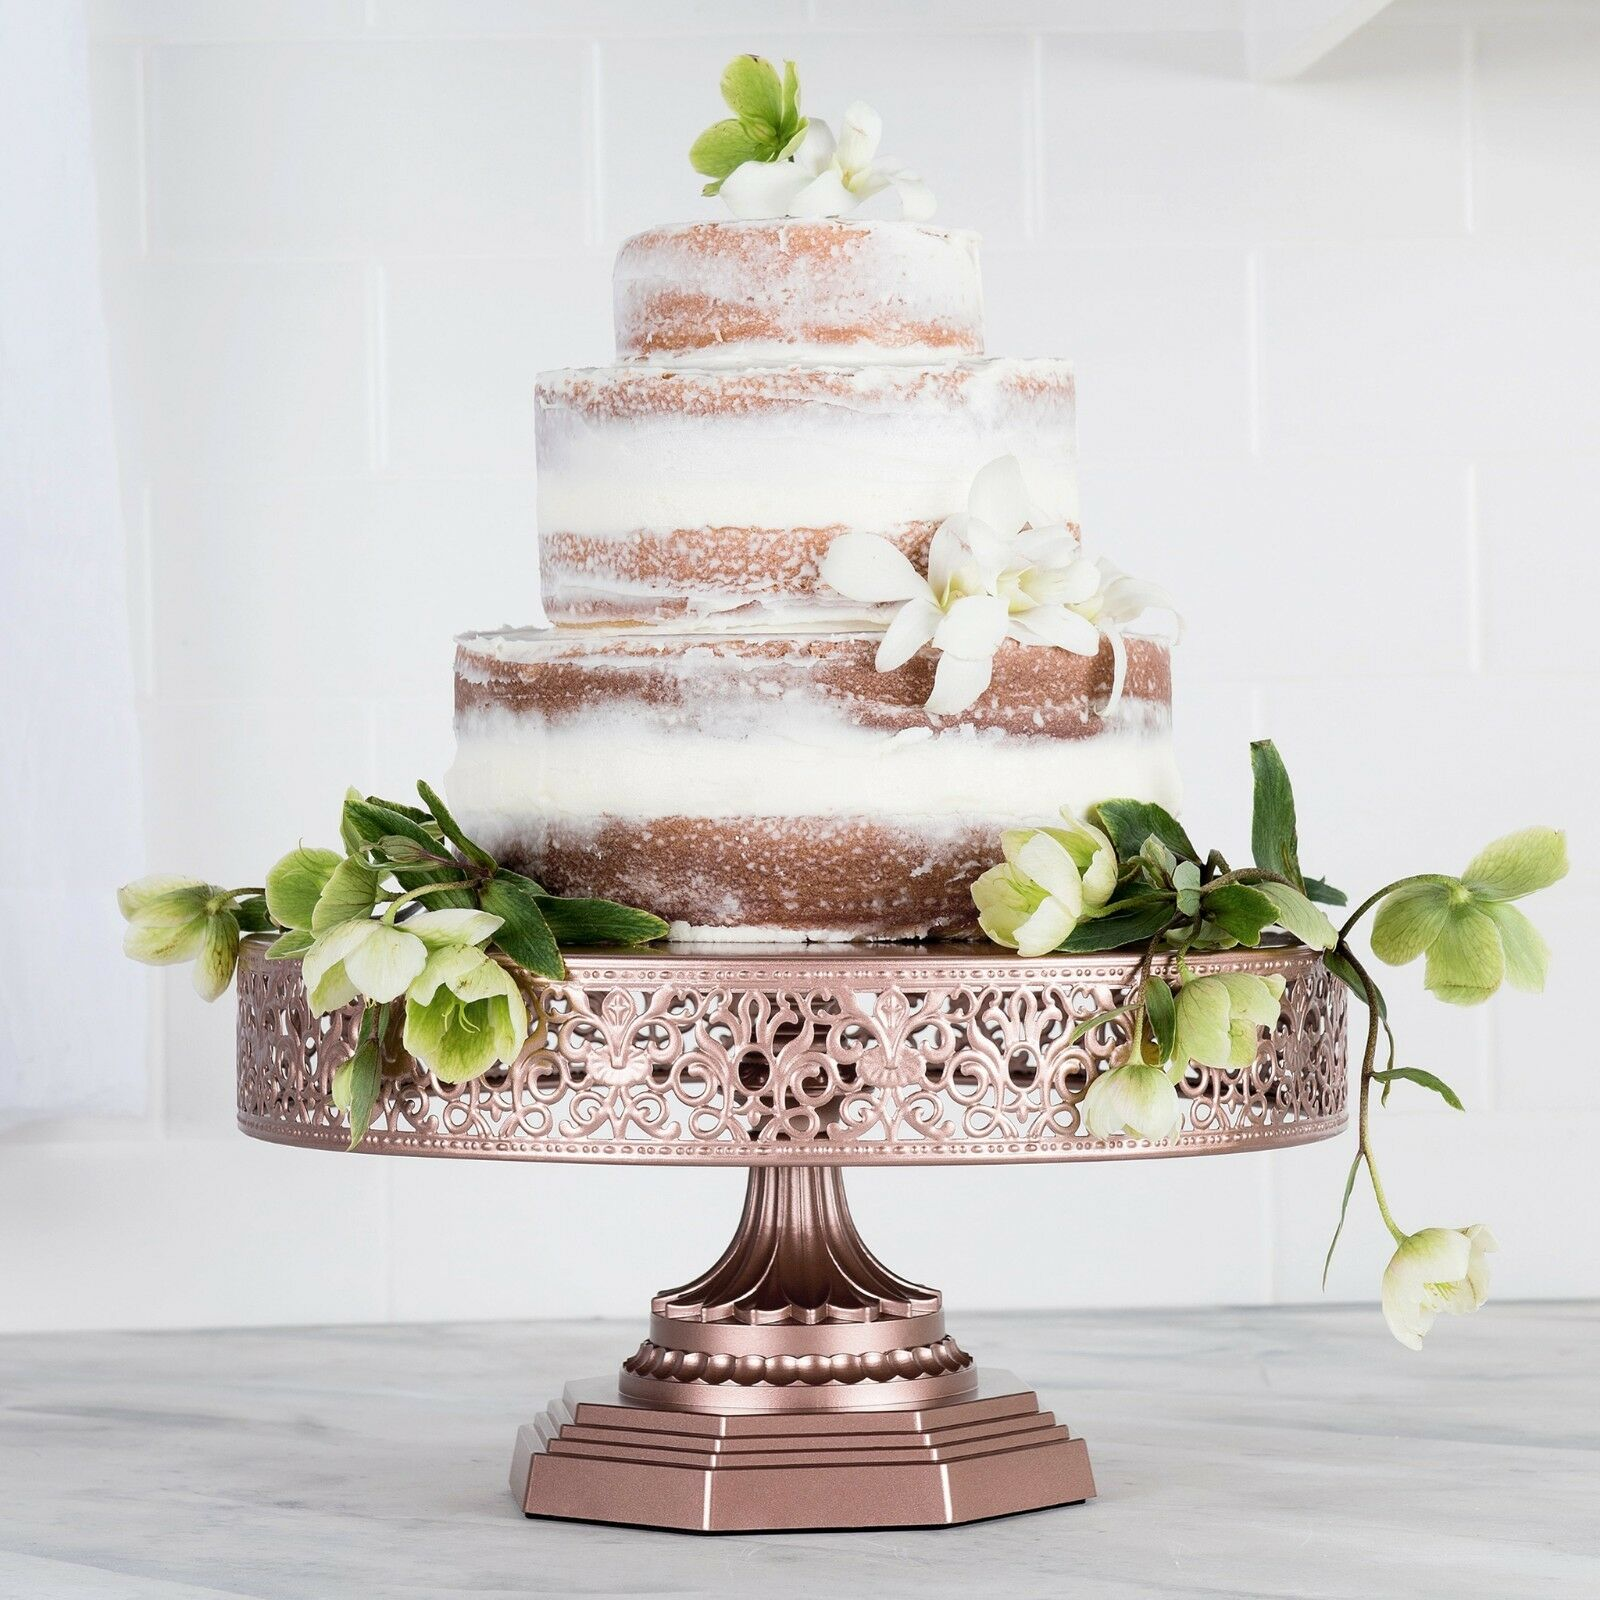 12 Inch Wedding Cake Stand Round Metal Event Party Display Pedestal Plate Tower